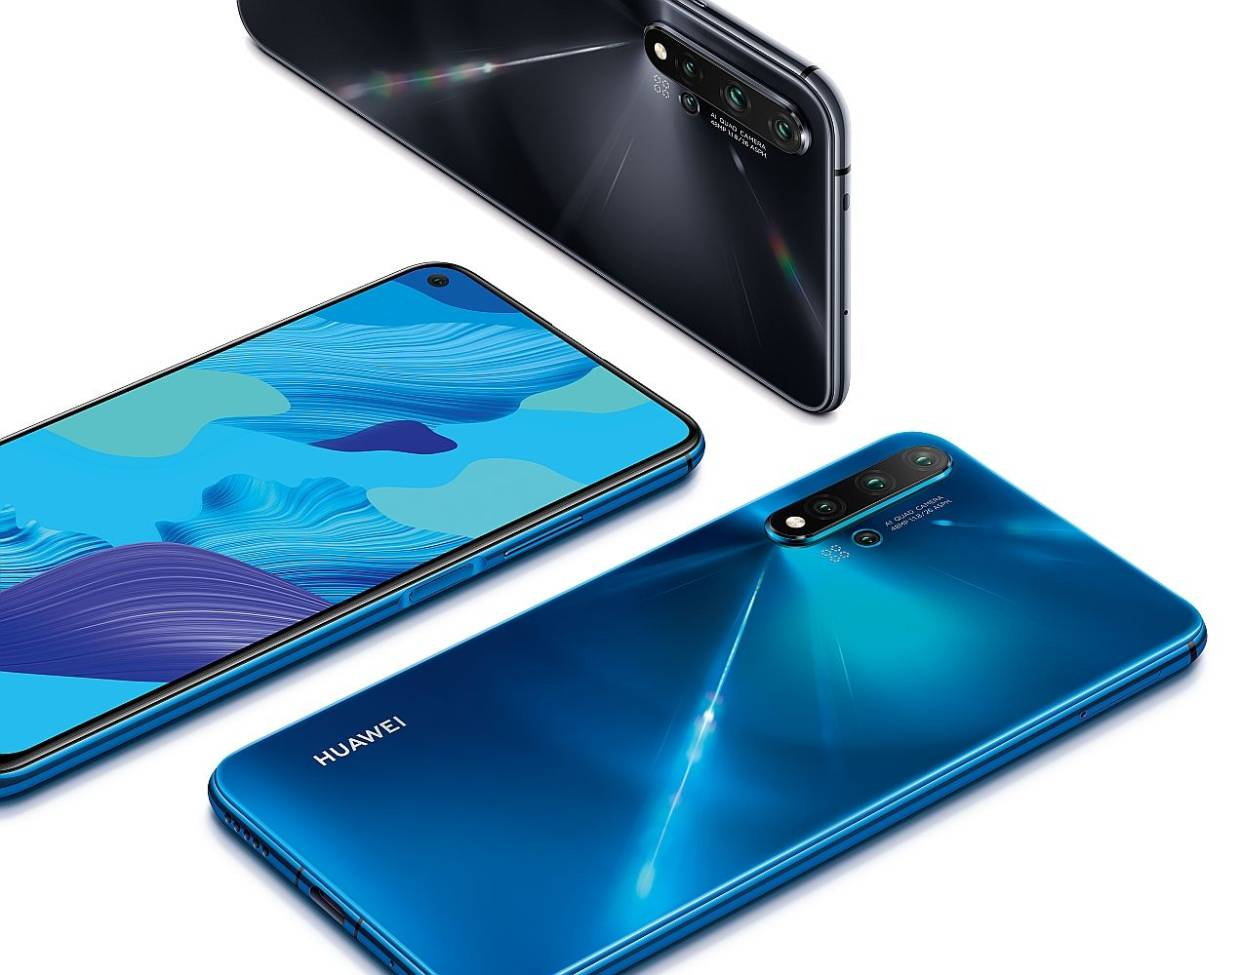 Pre Order Your New Five Ai Camera Huawei Nova 5t Tomorrow